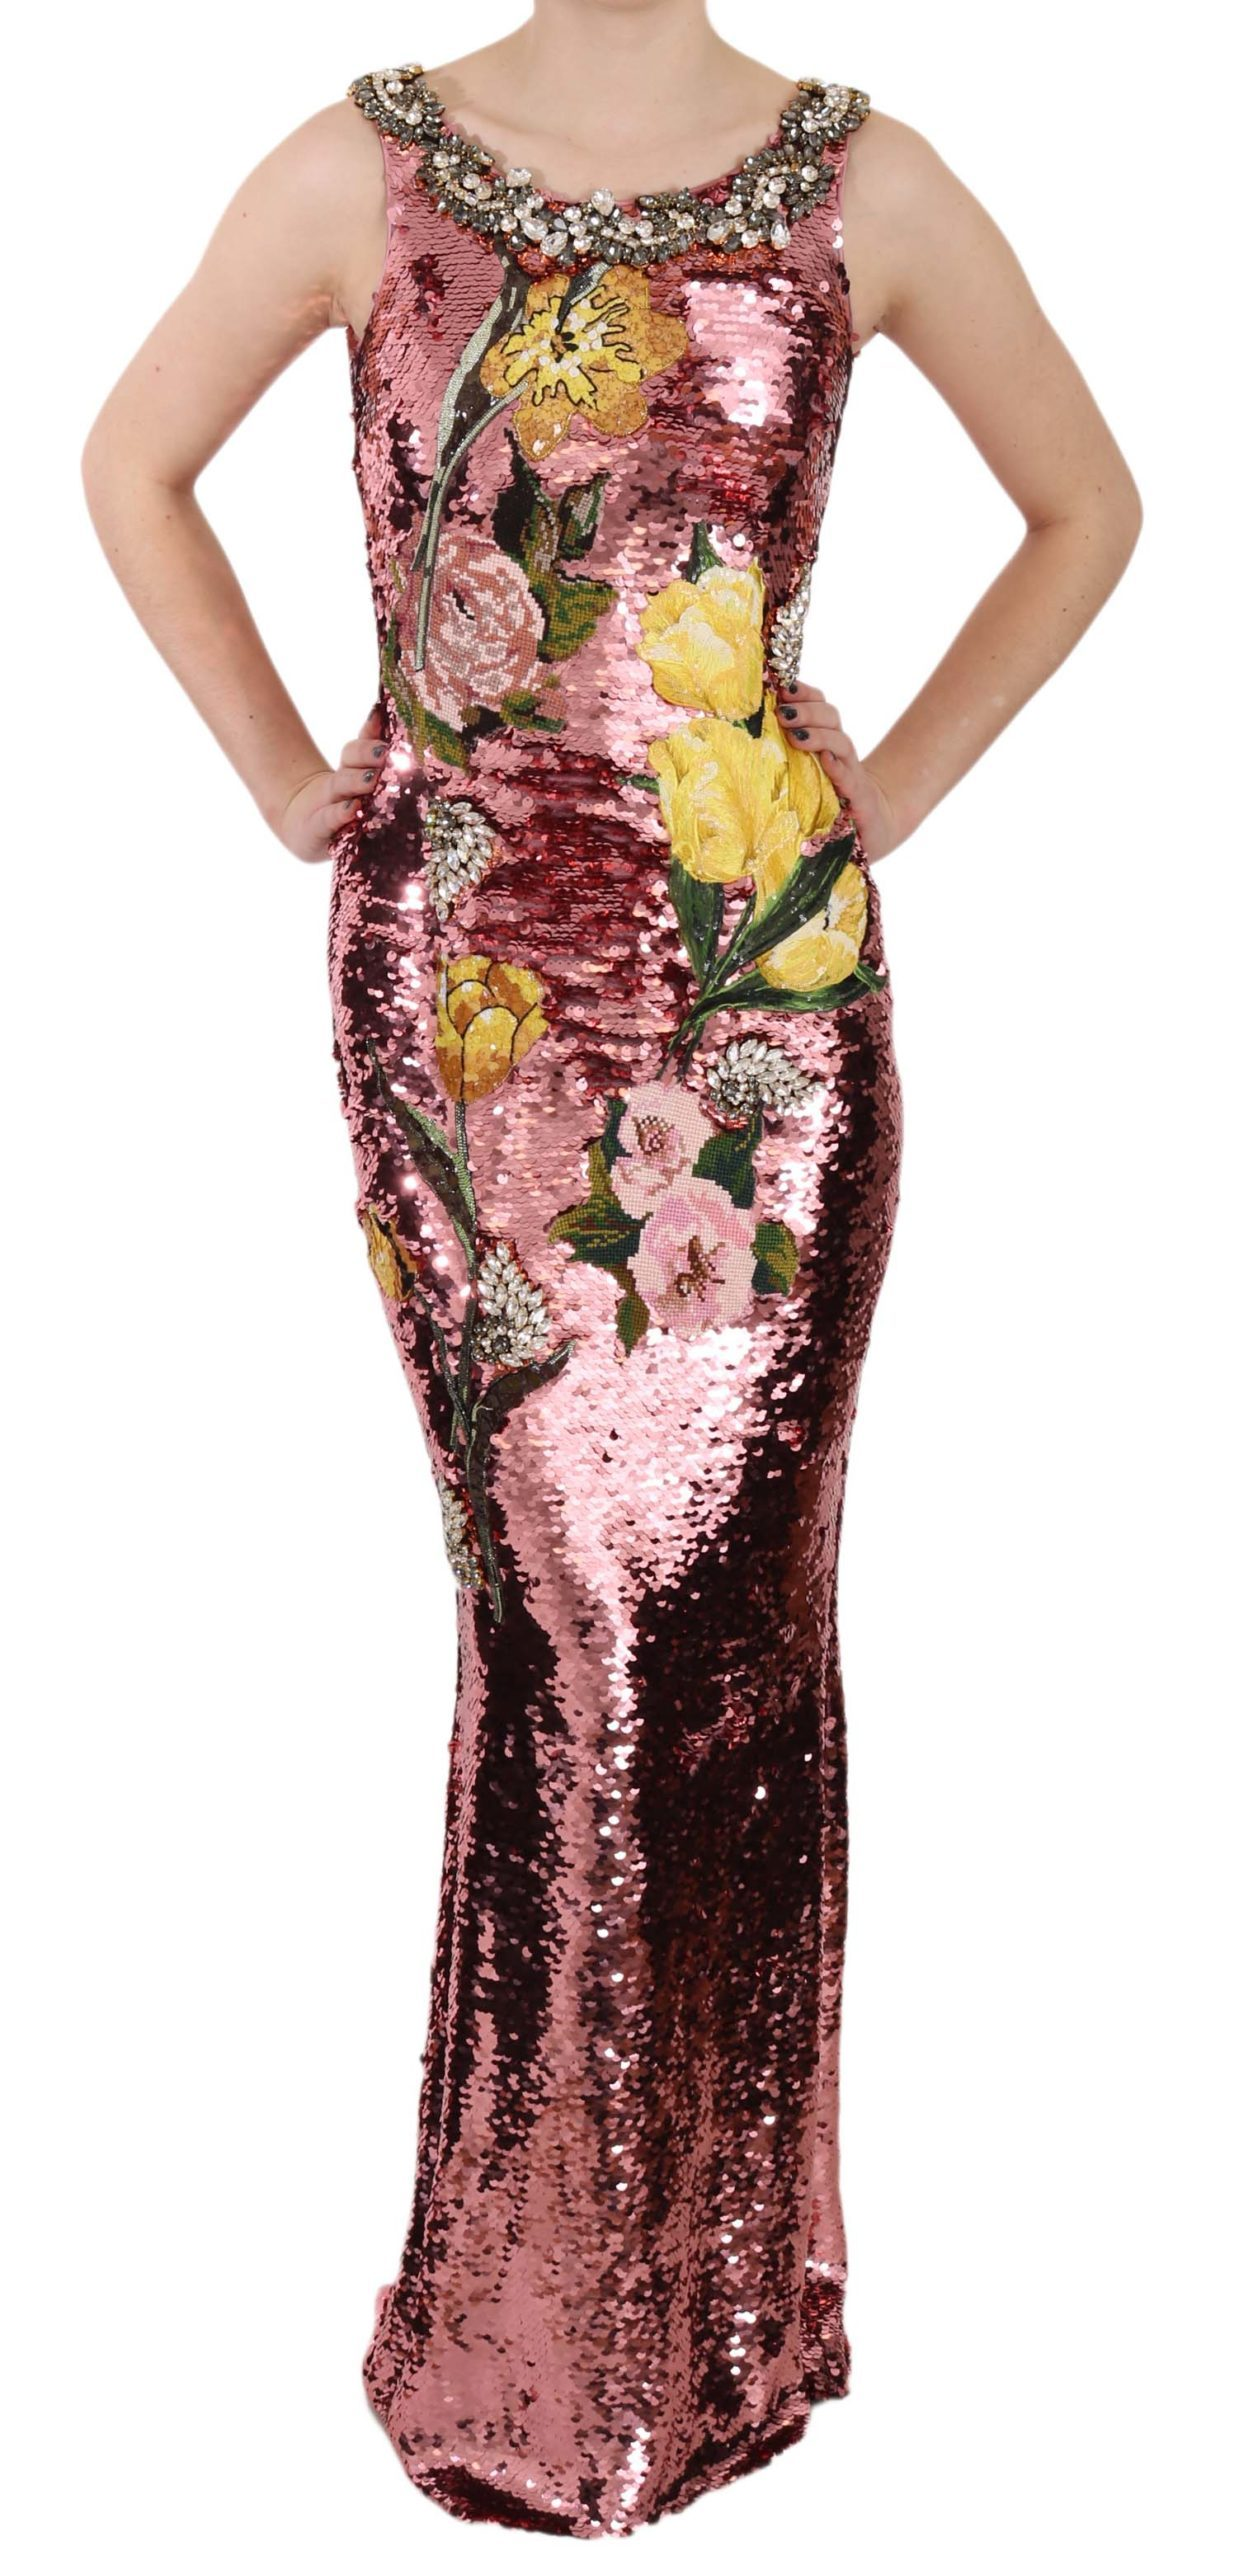 Dolce & Gabbana Women's Crystal Sequined Sheath Gown Dress Pink DR1677 - IT38|XS